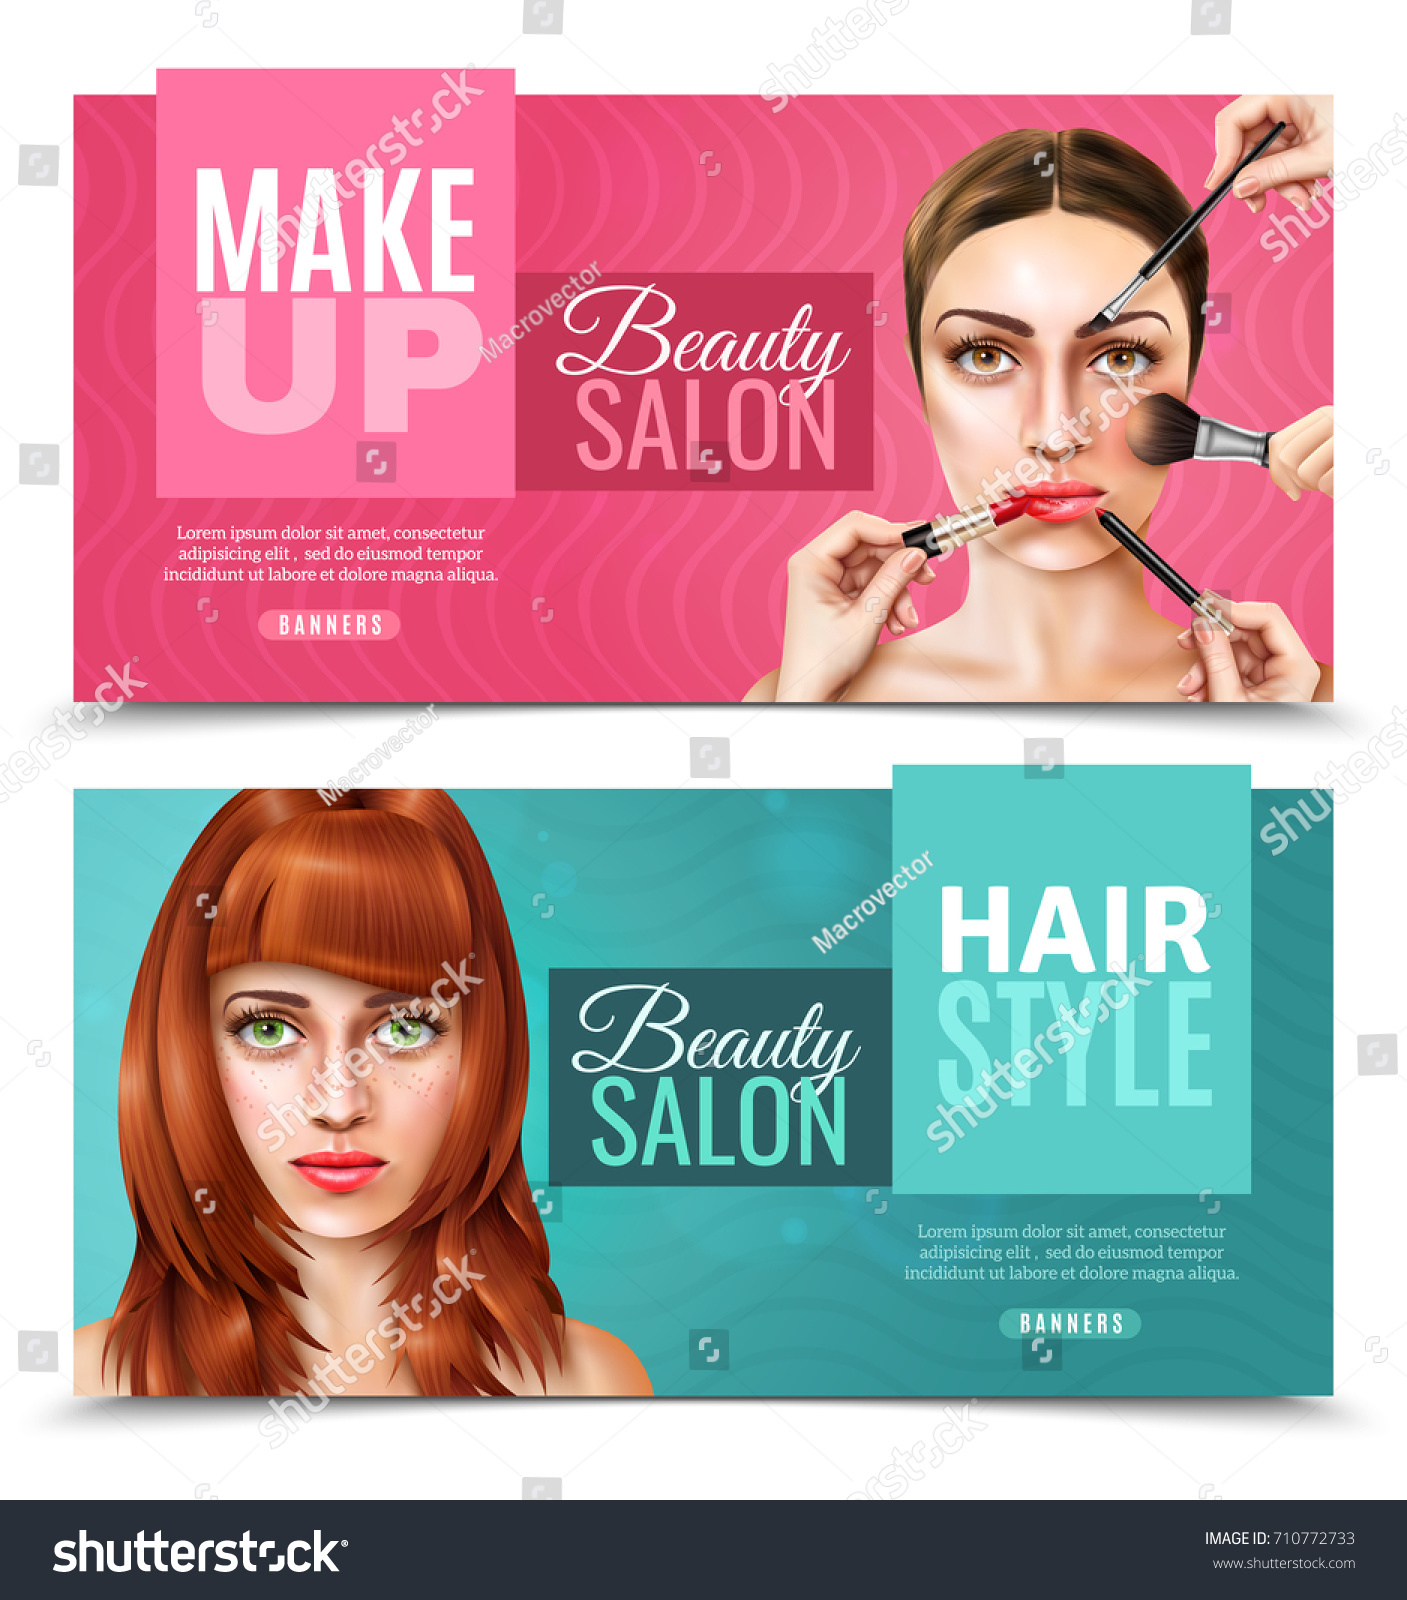 Horizontal Beauty Salon Banners Pink Blue Stock Vector Royalty Free 710772733